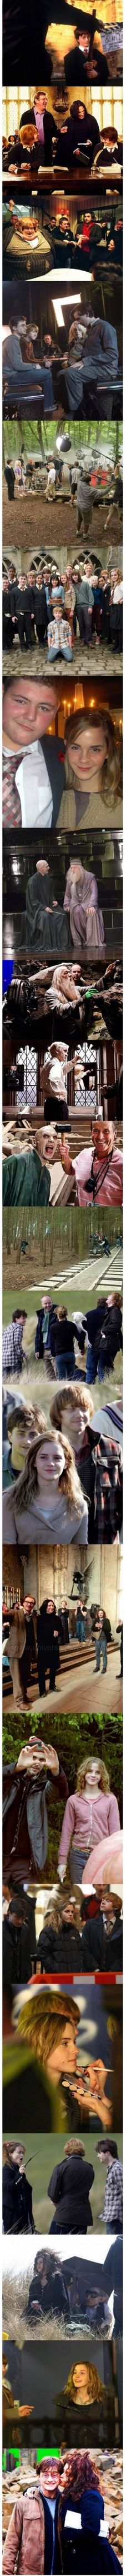 HARRY POTTER :) behind the scenes, gotta love it